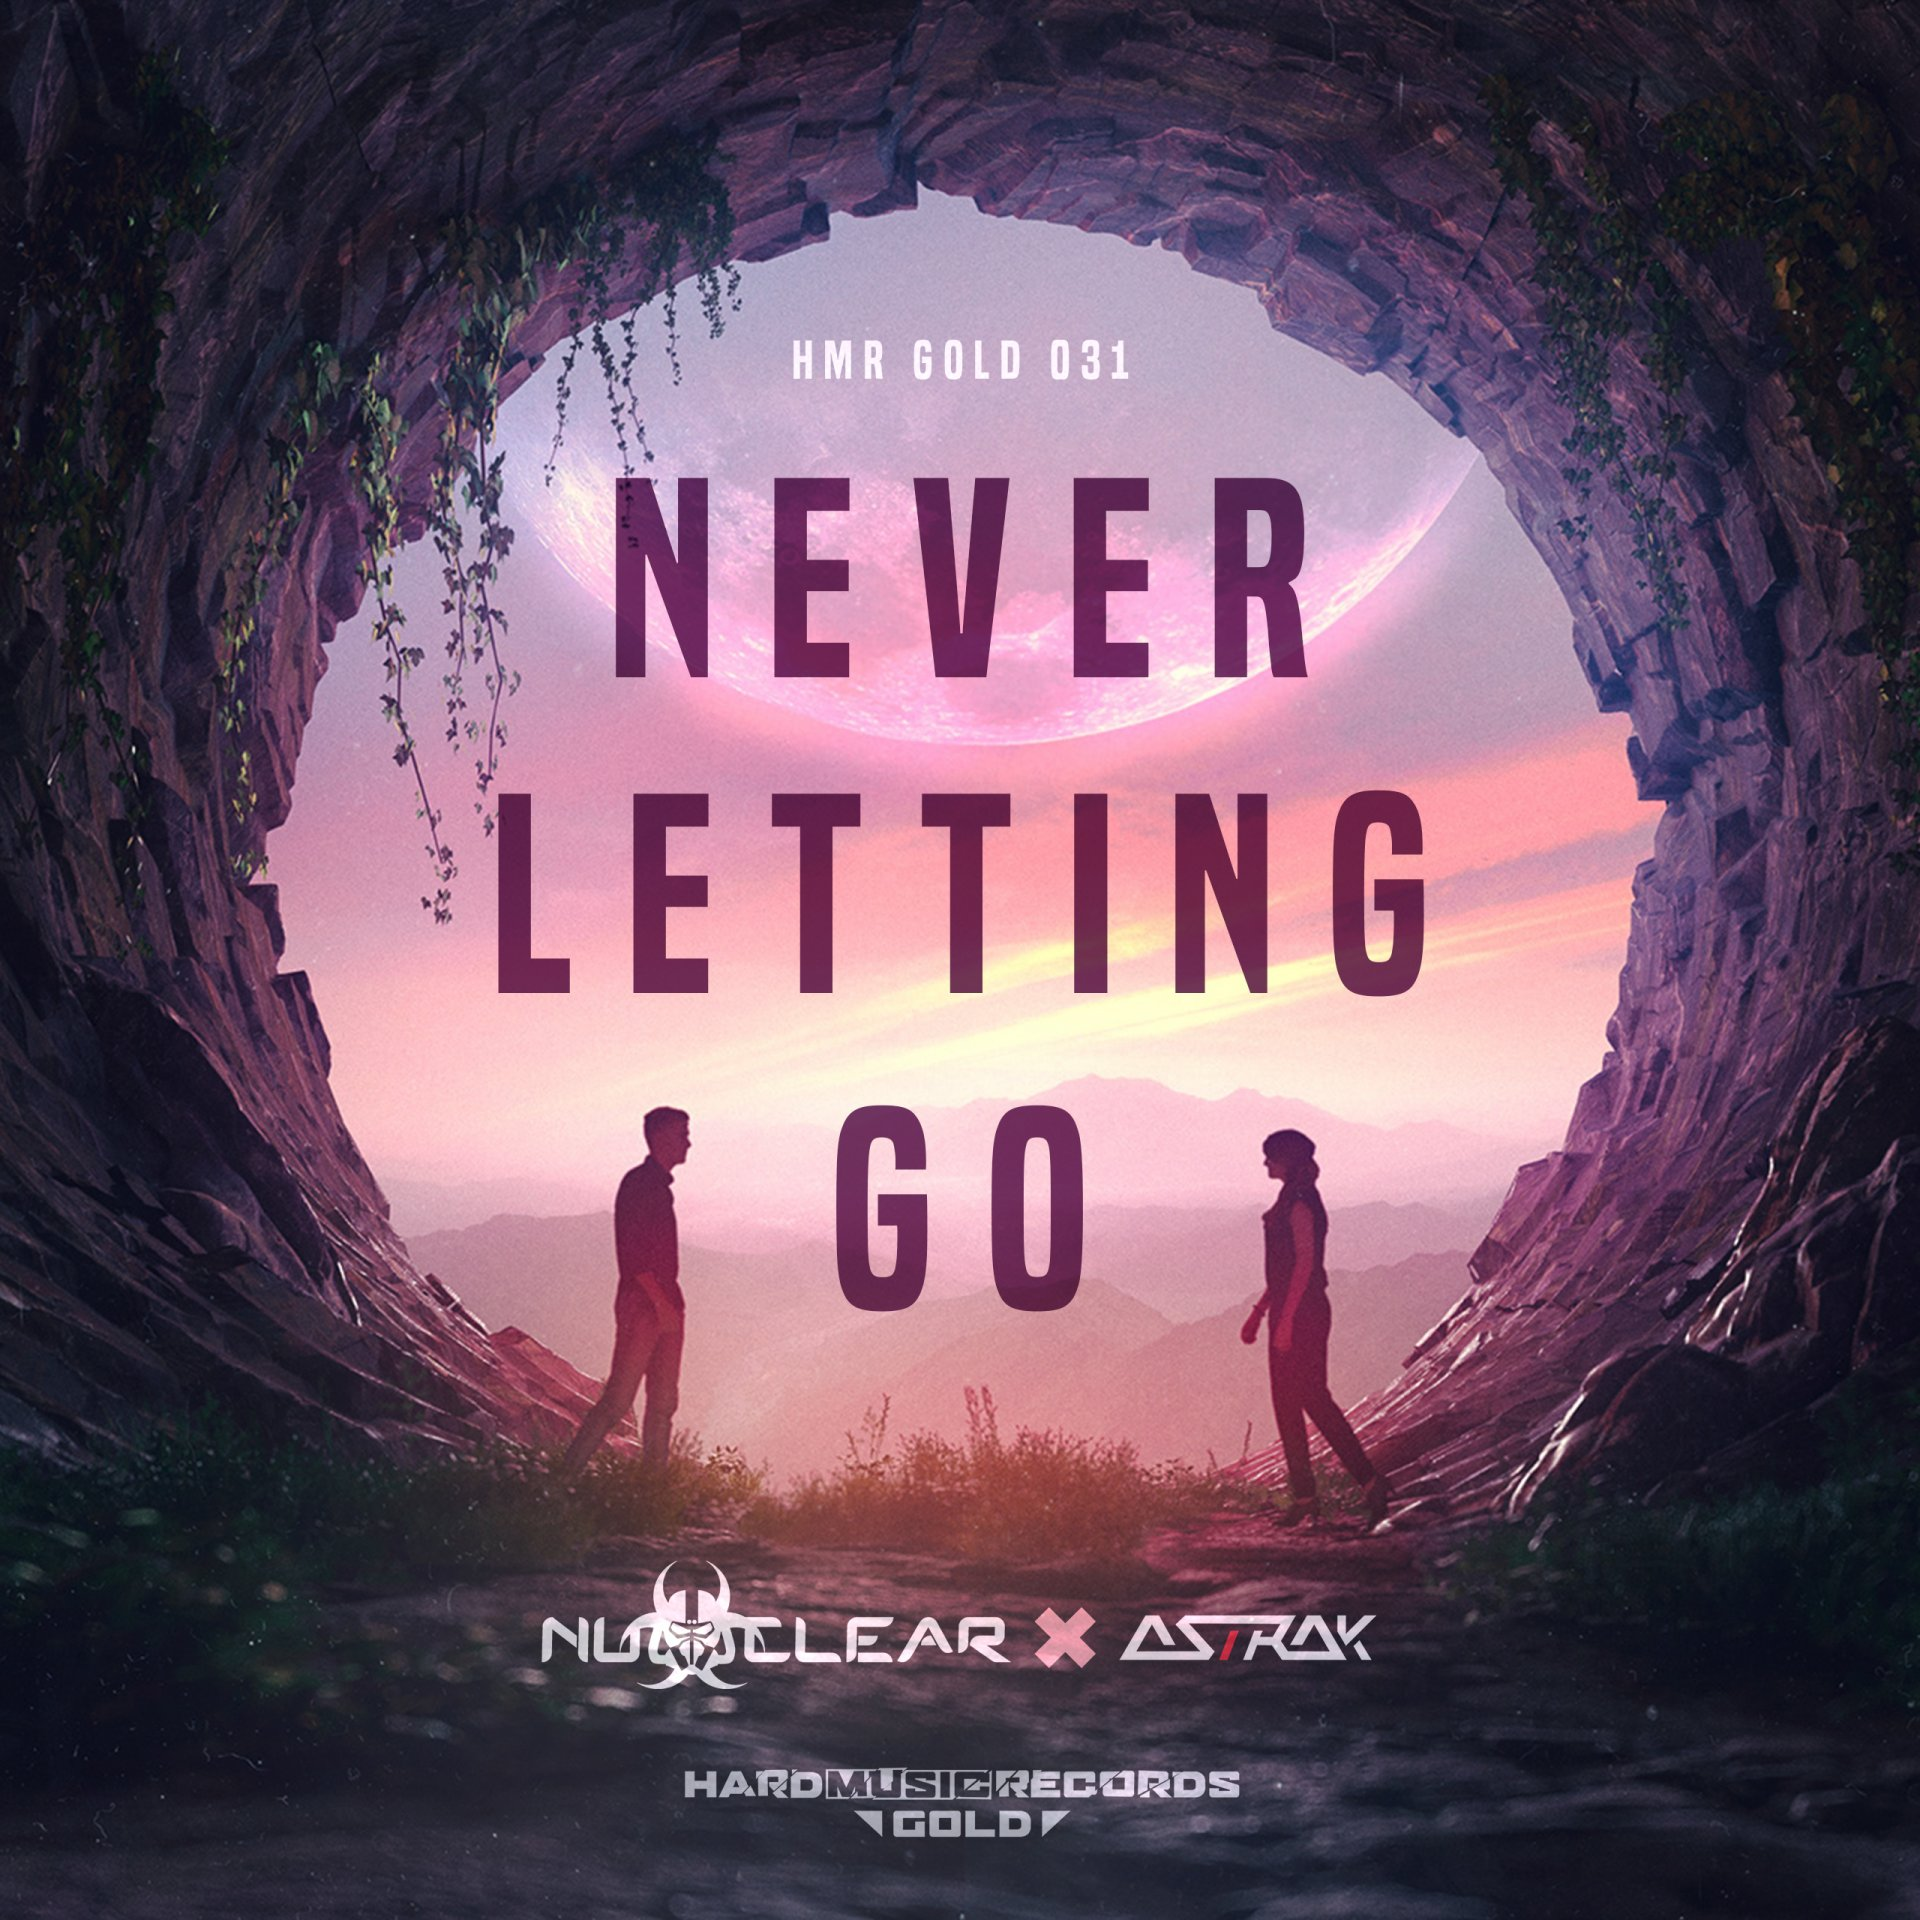 Never Letting Go by Nu-Clear feat. Astrak